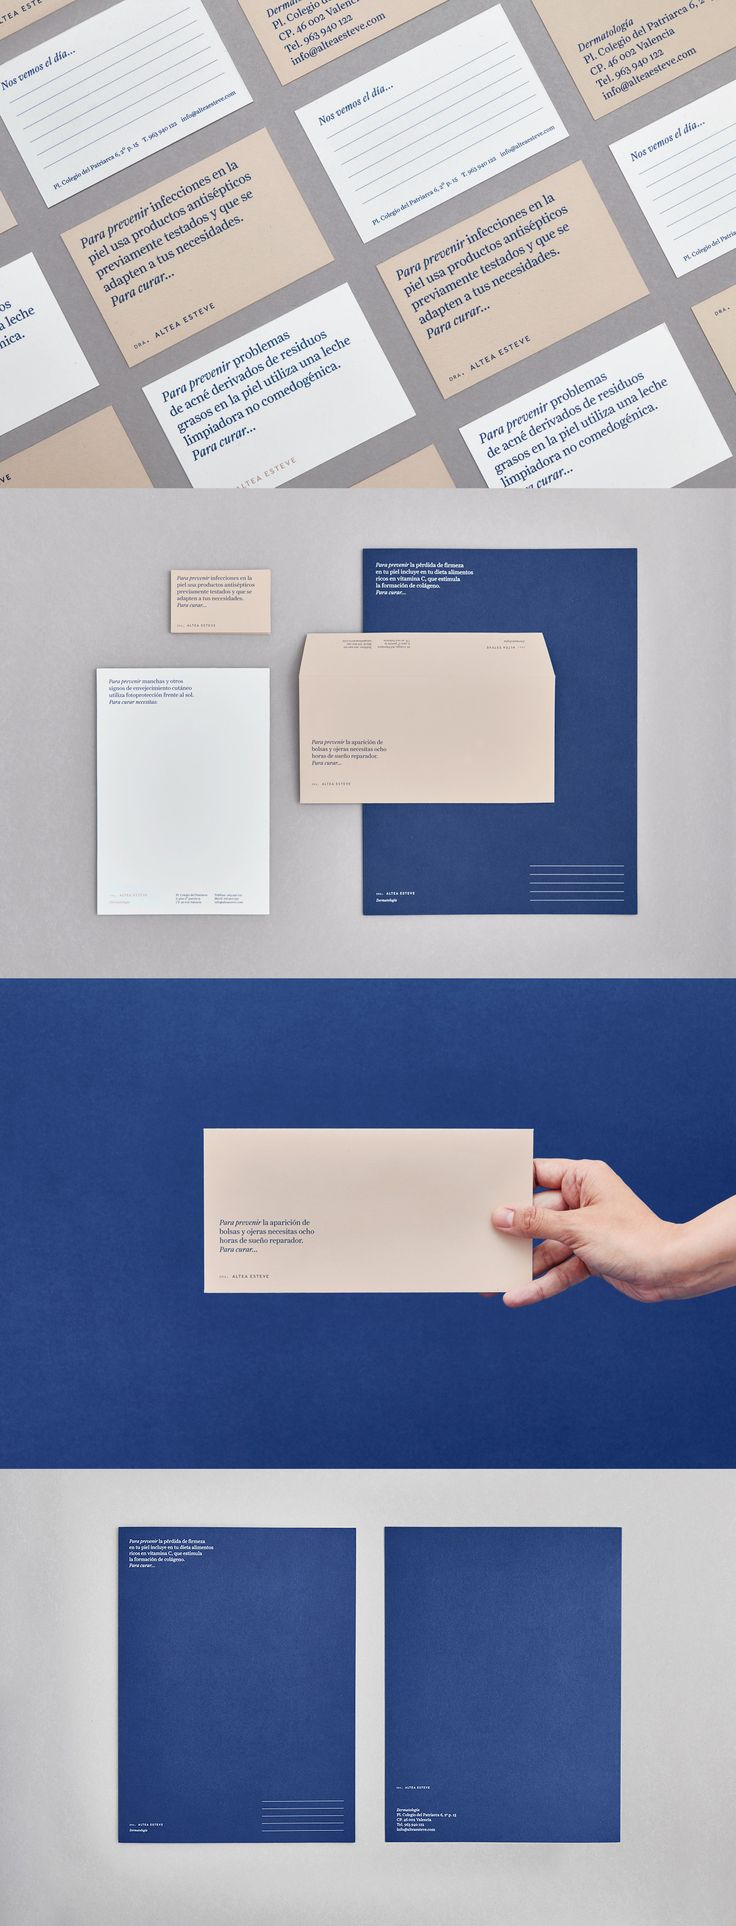 Inspiring graphic design. Minimal business card and stationery design.